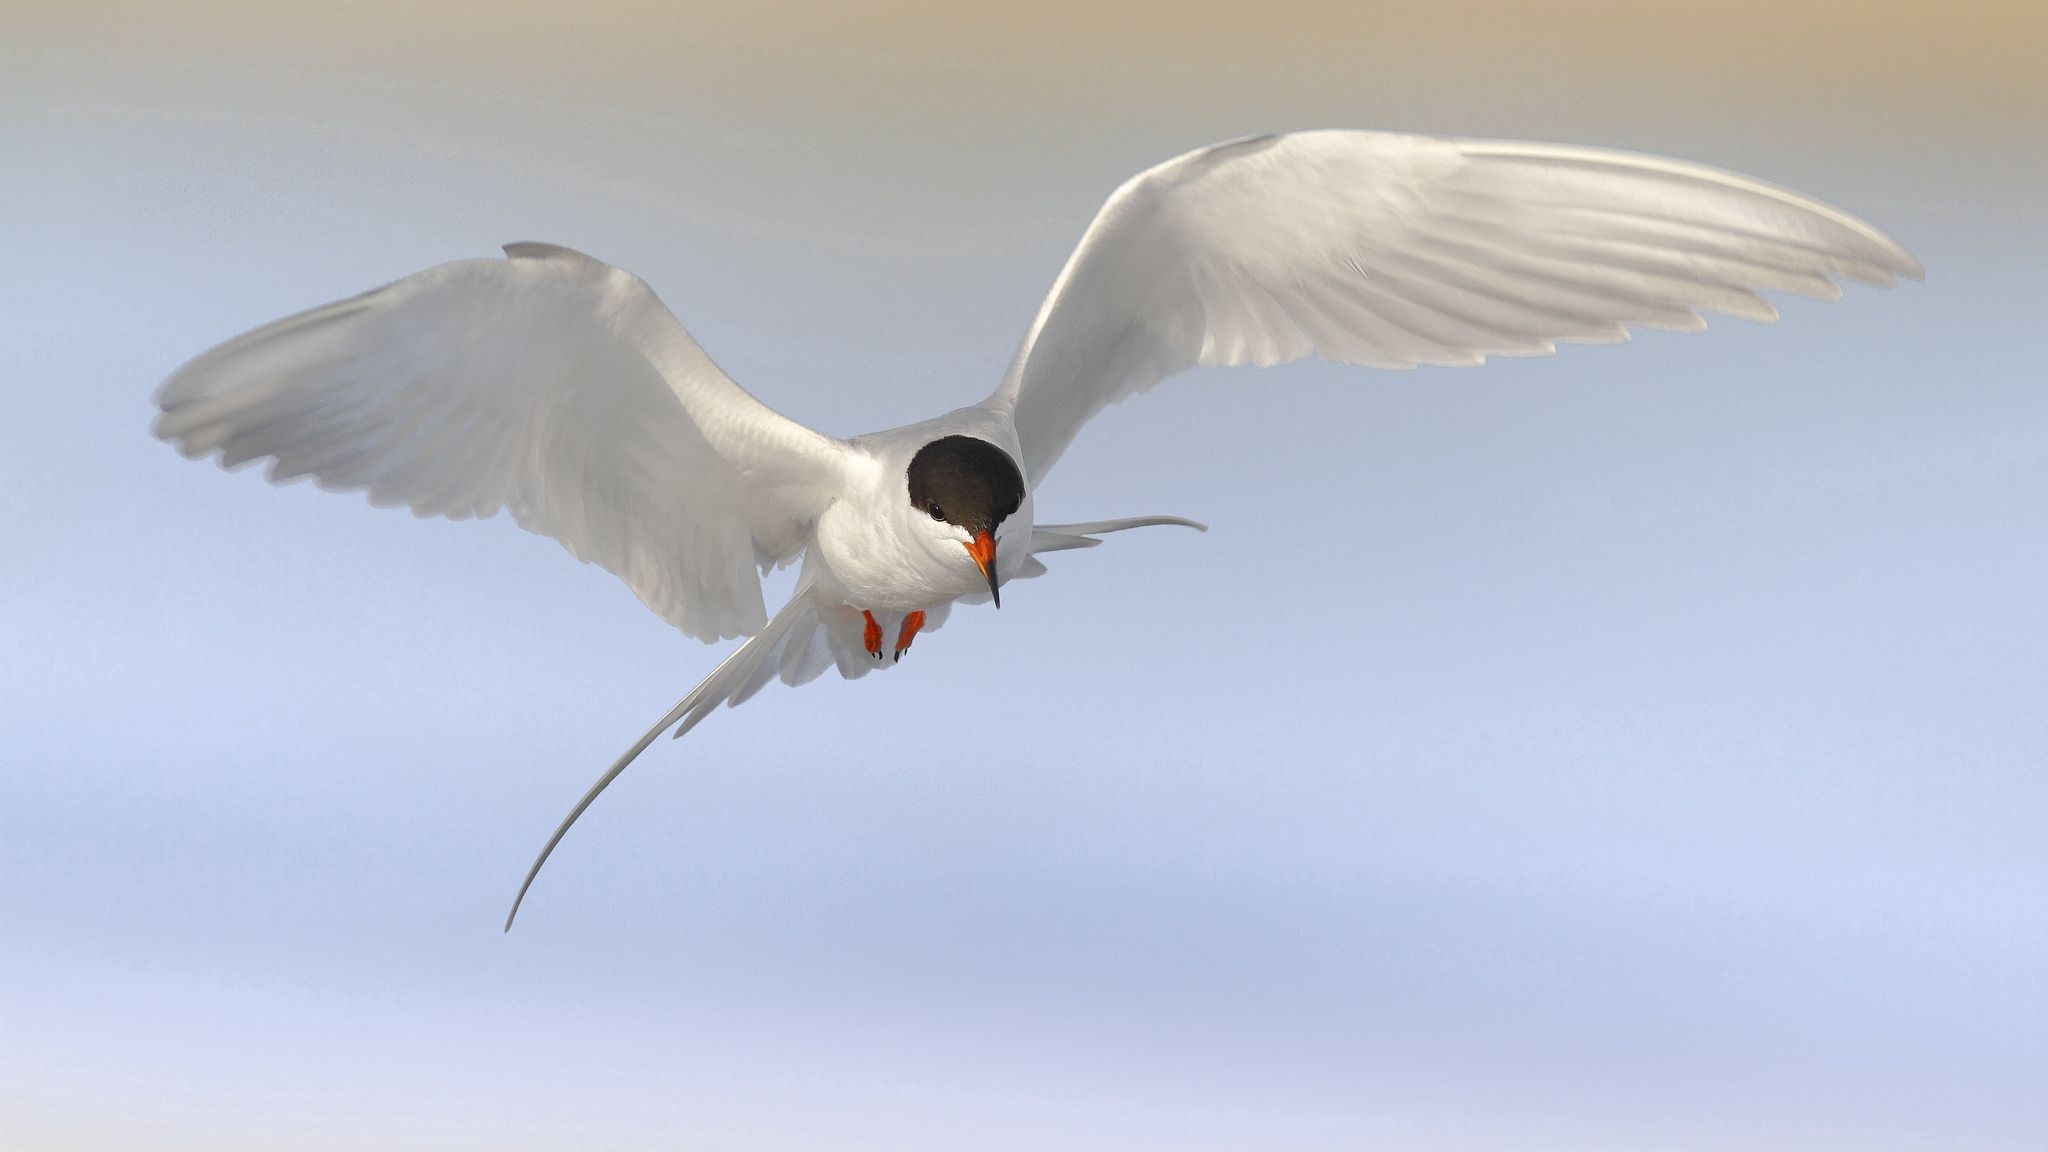 140362 download wallpaper Animals, Bird, Gull, Seagull, Tern, Sky screensavers and pictures for free